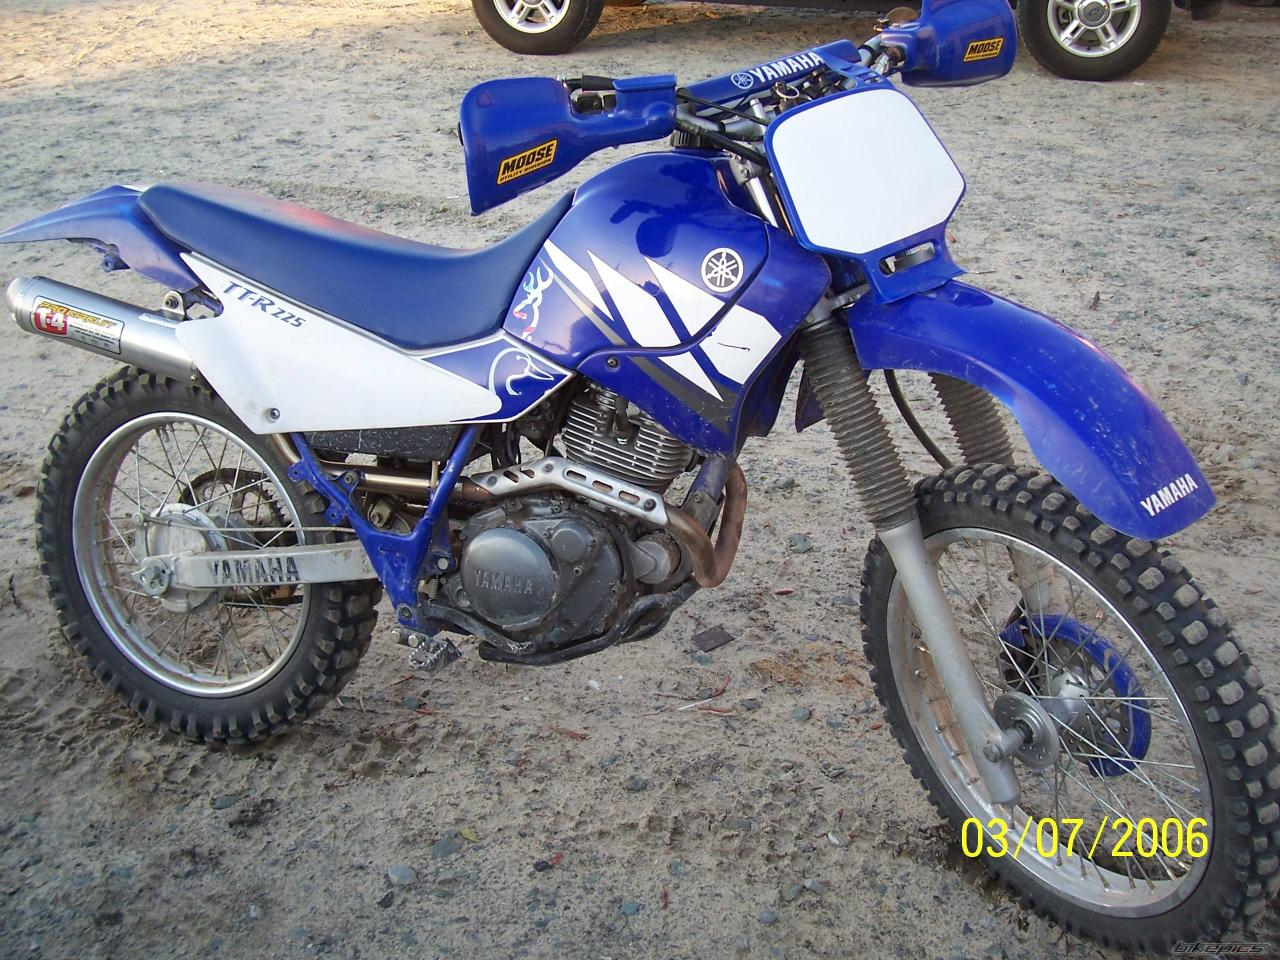 Yamaha 225 photo - 8